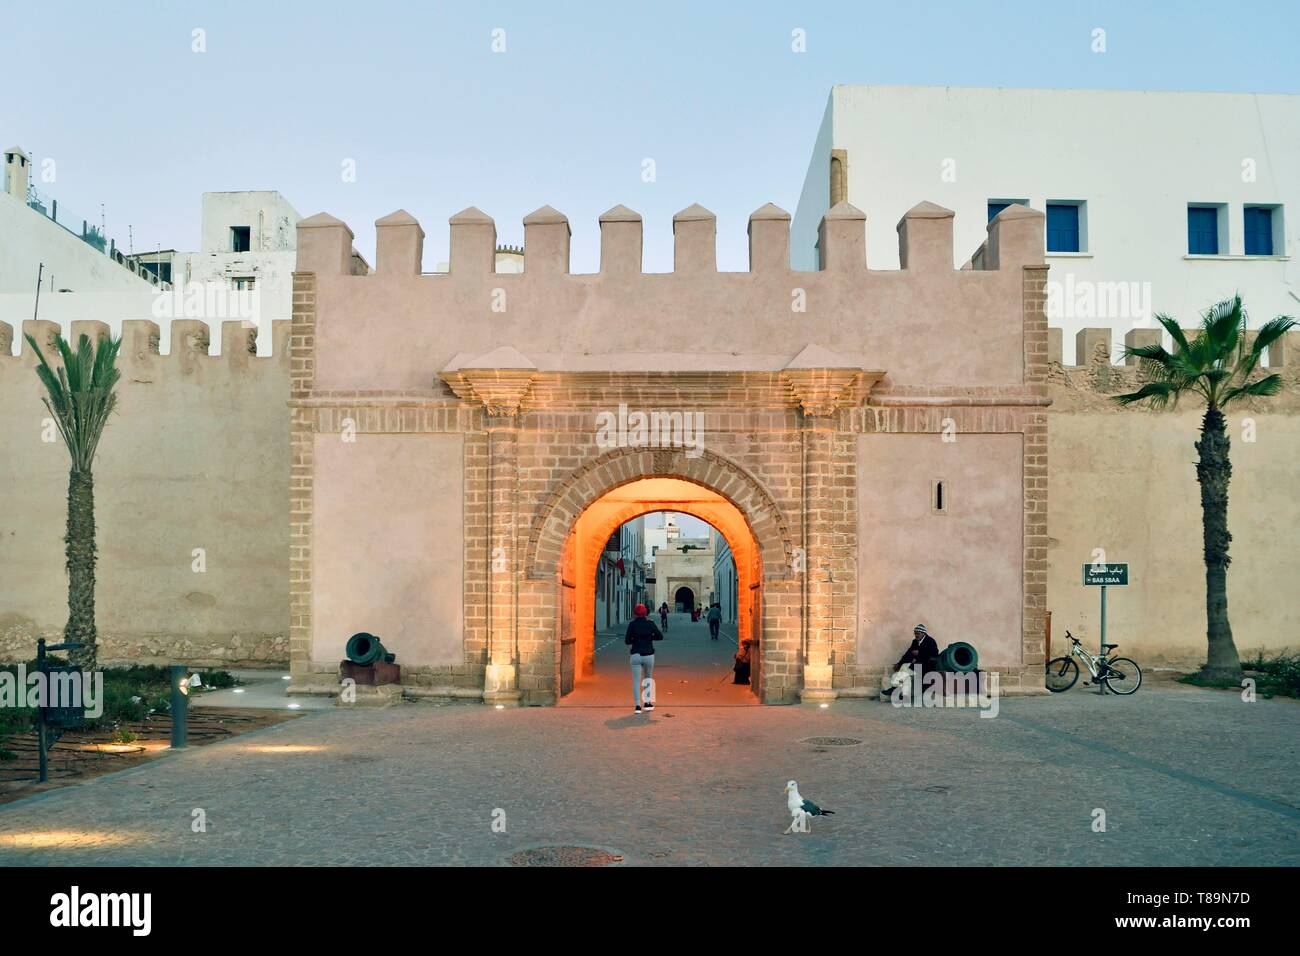 Morocco, Mogador, Marrakesh Safi region, Essaouira, listed as World Heritage by UNESCO, old city, fortifications of the medina, Bab es Sebaa gate Stock Photo